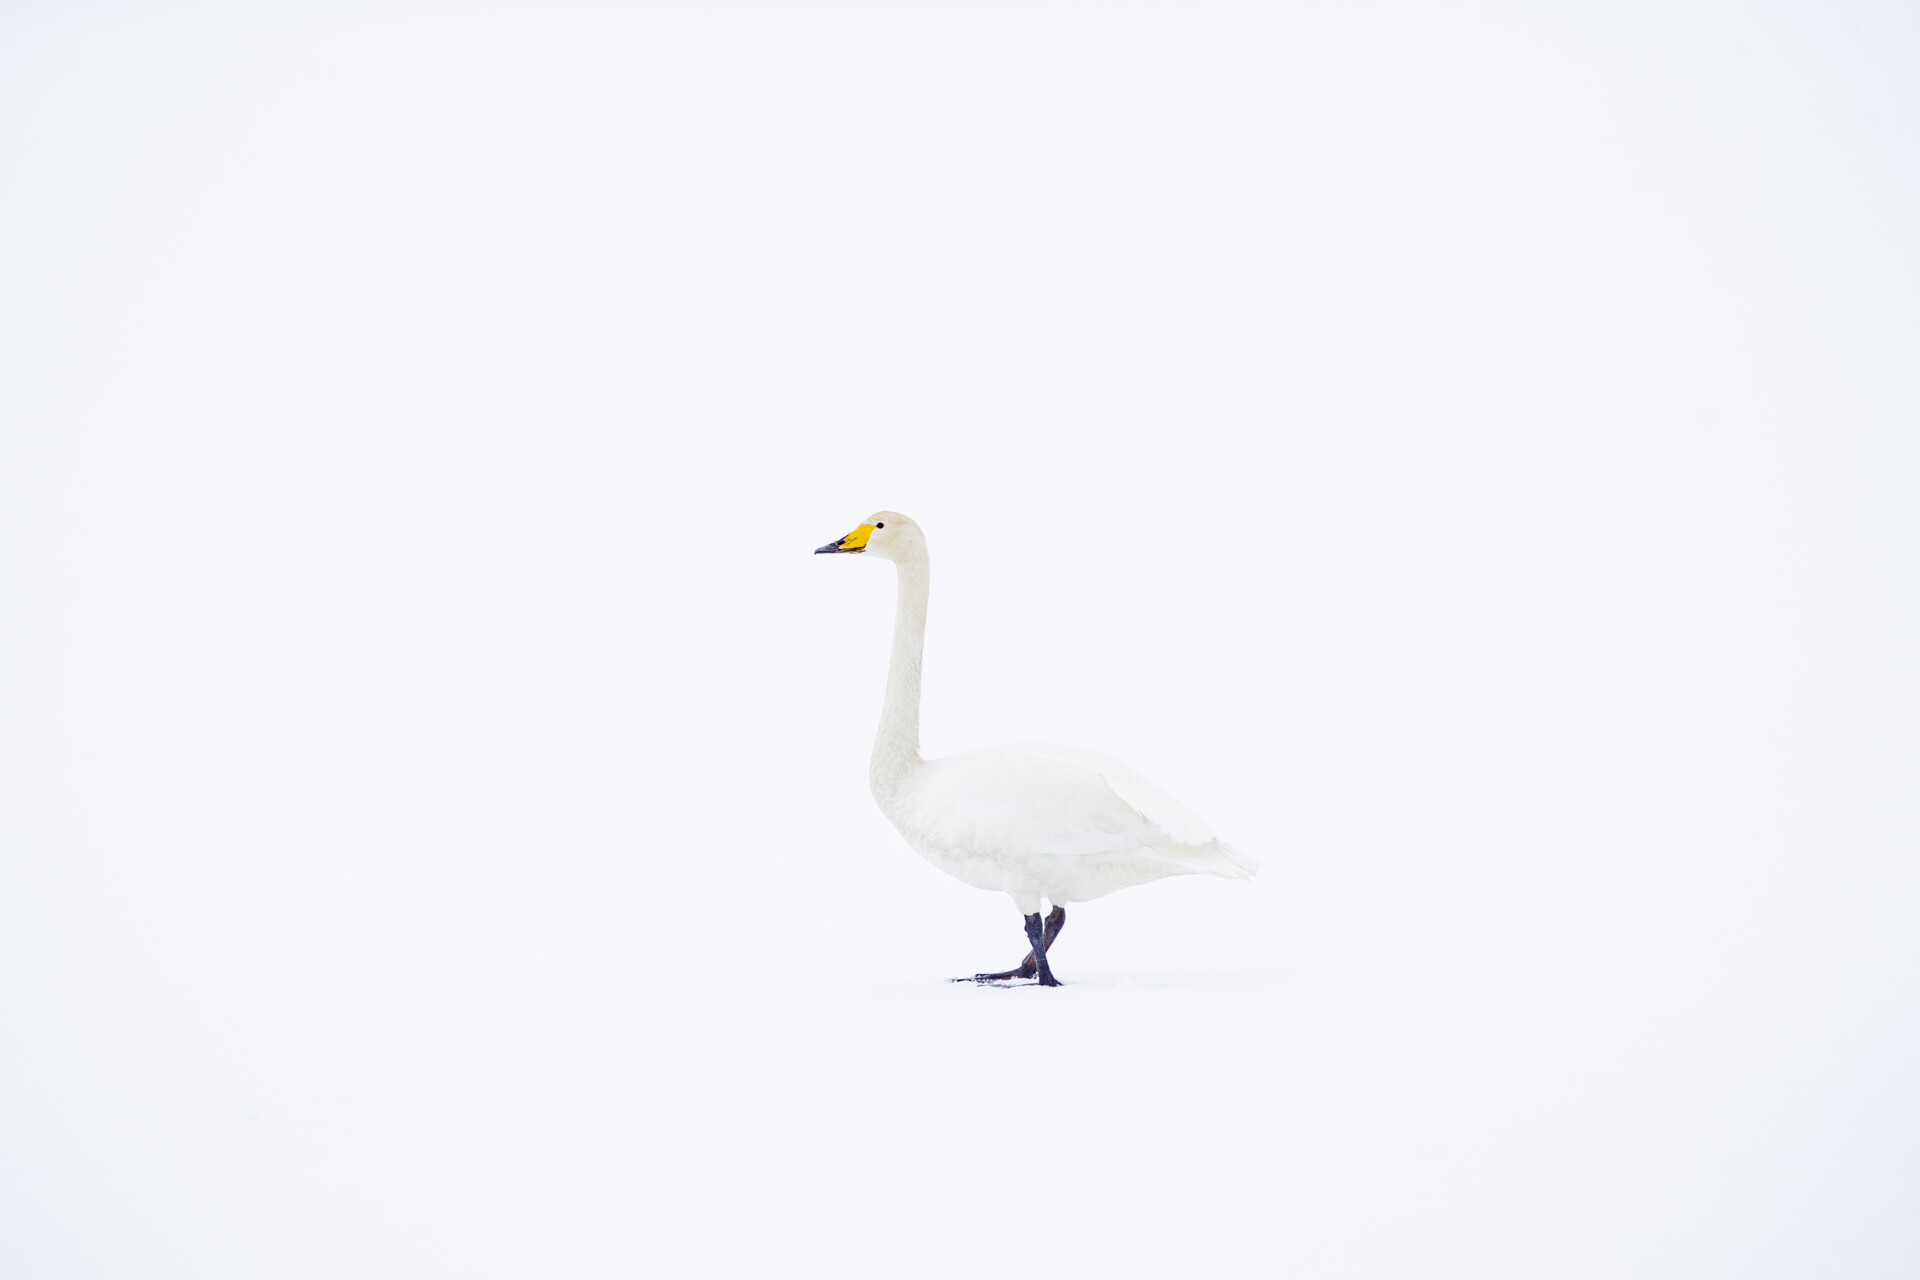 Swan in the snow from the series 'Kites in the Sky' by Piet van den Bemd©